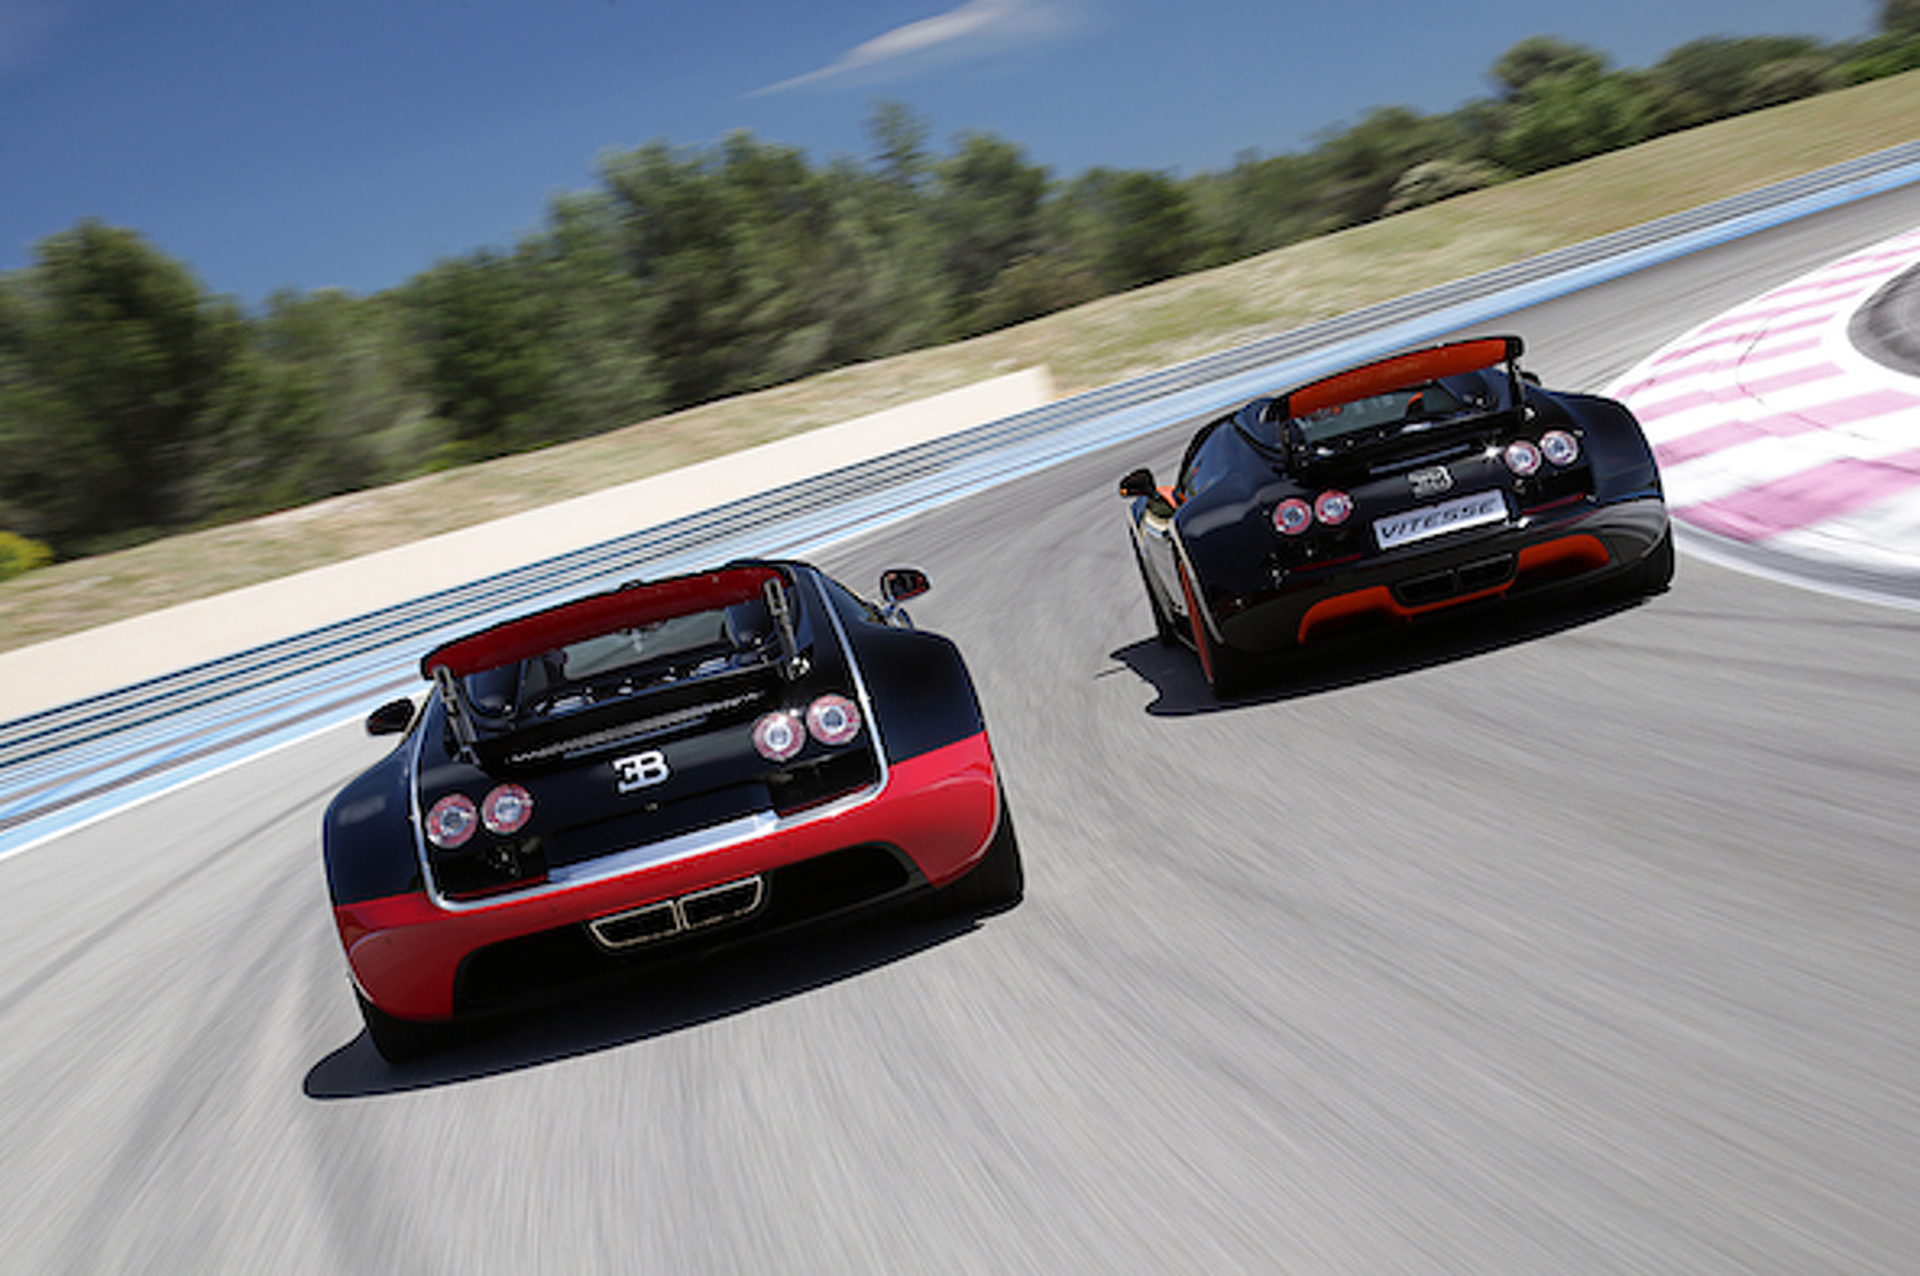 Bugatti Planning Second-Generation Veyron With Even More Power